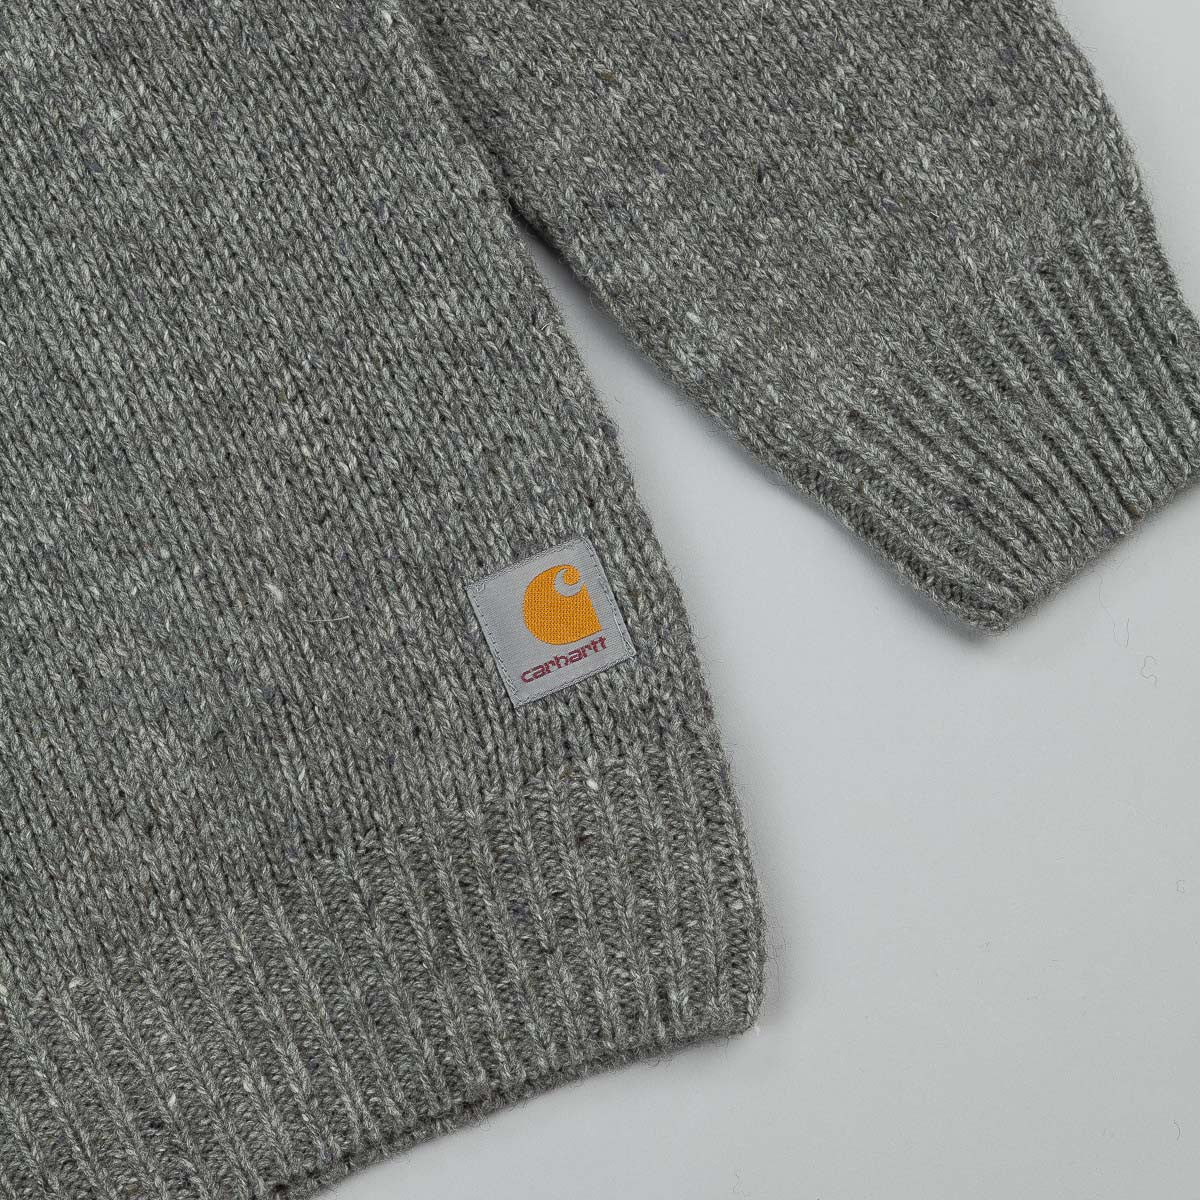 Carhartt Anglistic Sweatshirt - Dark Grey Heather